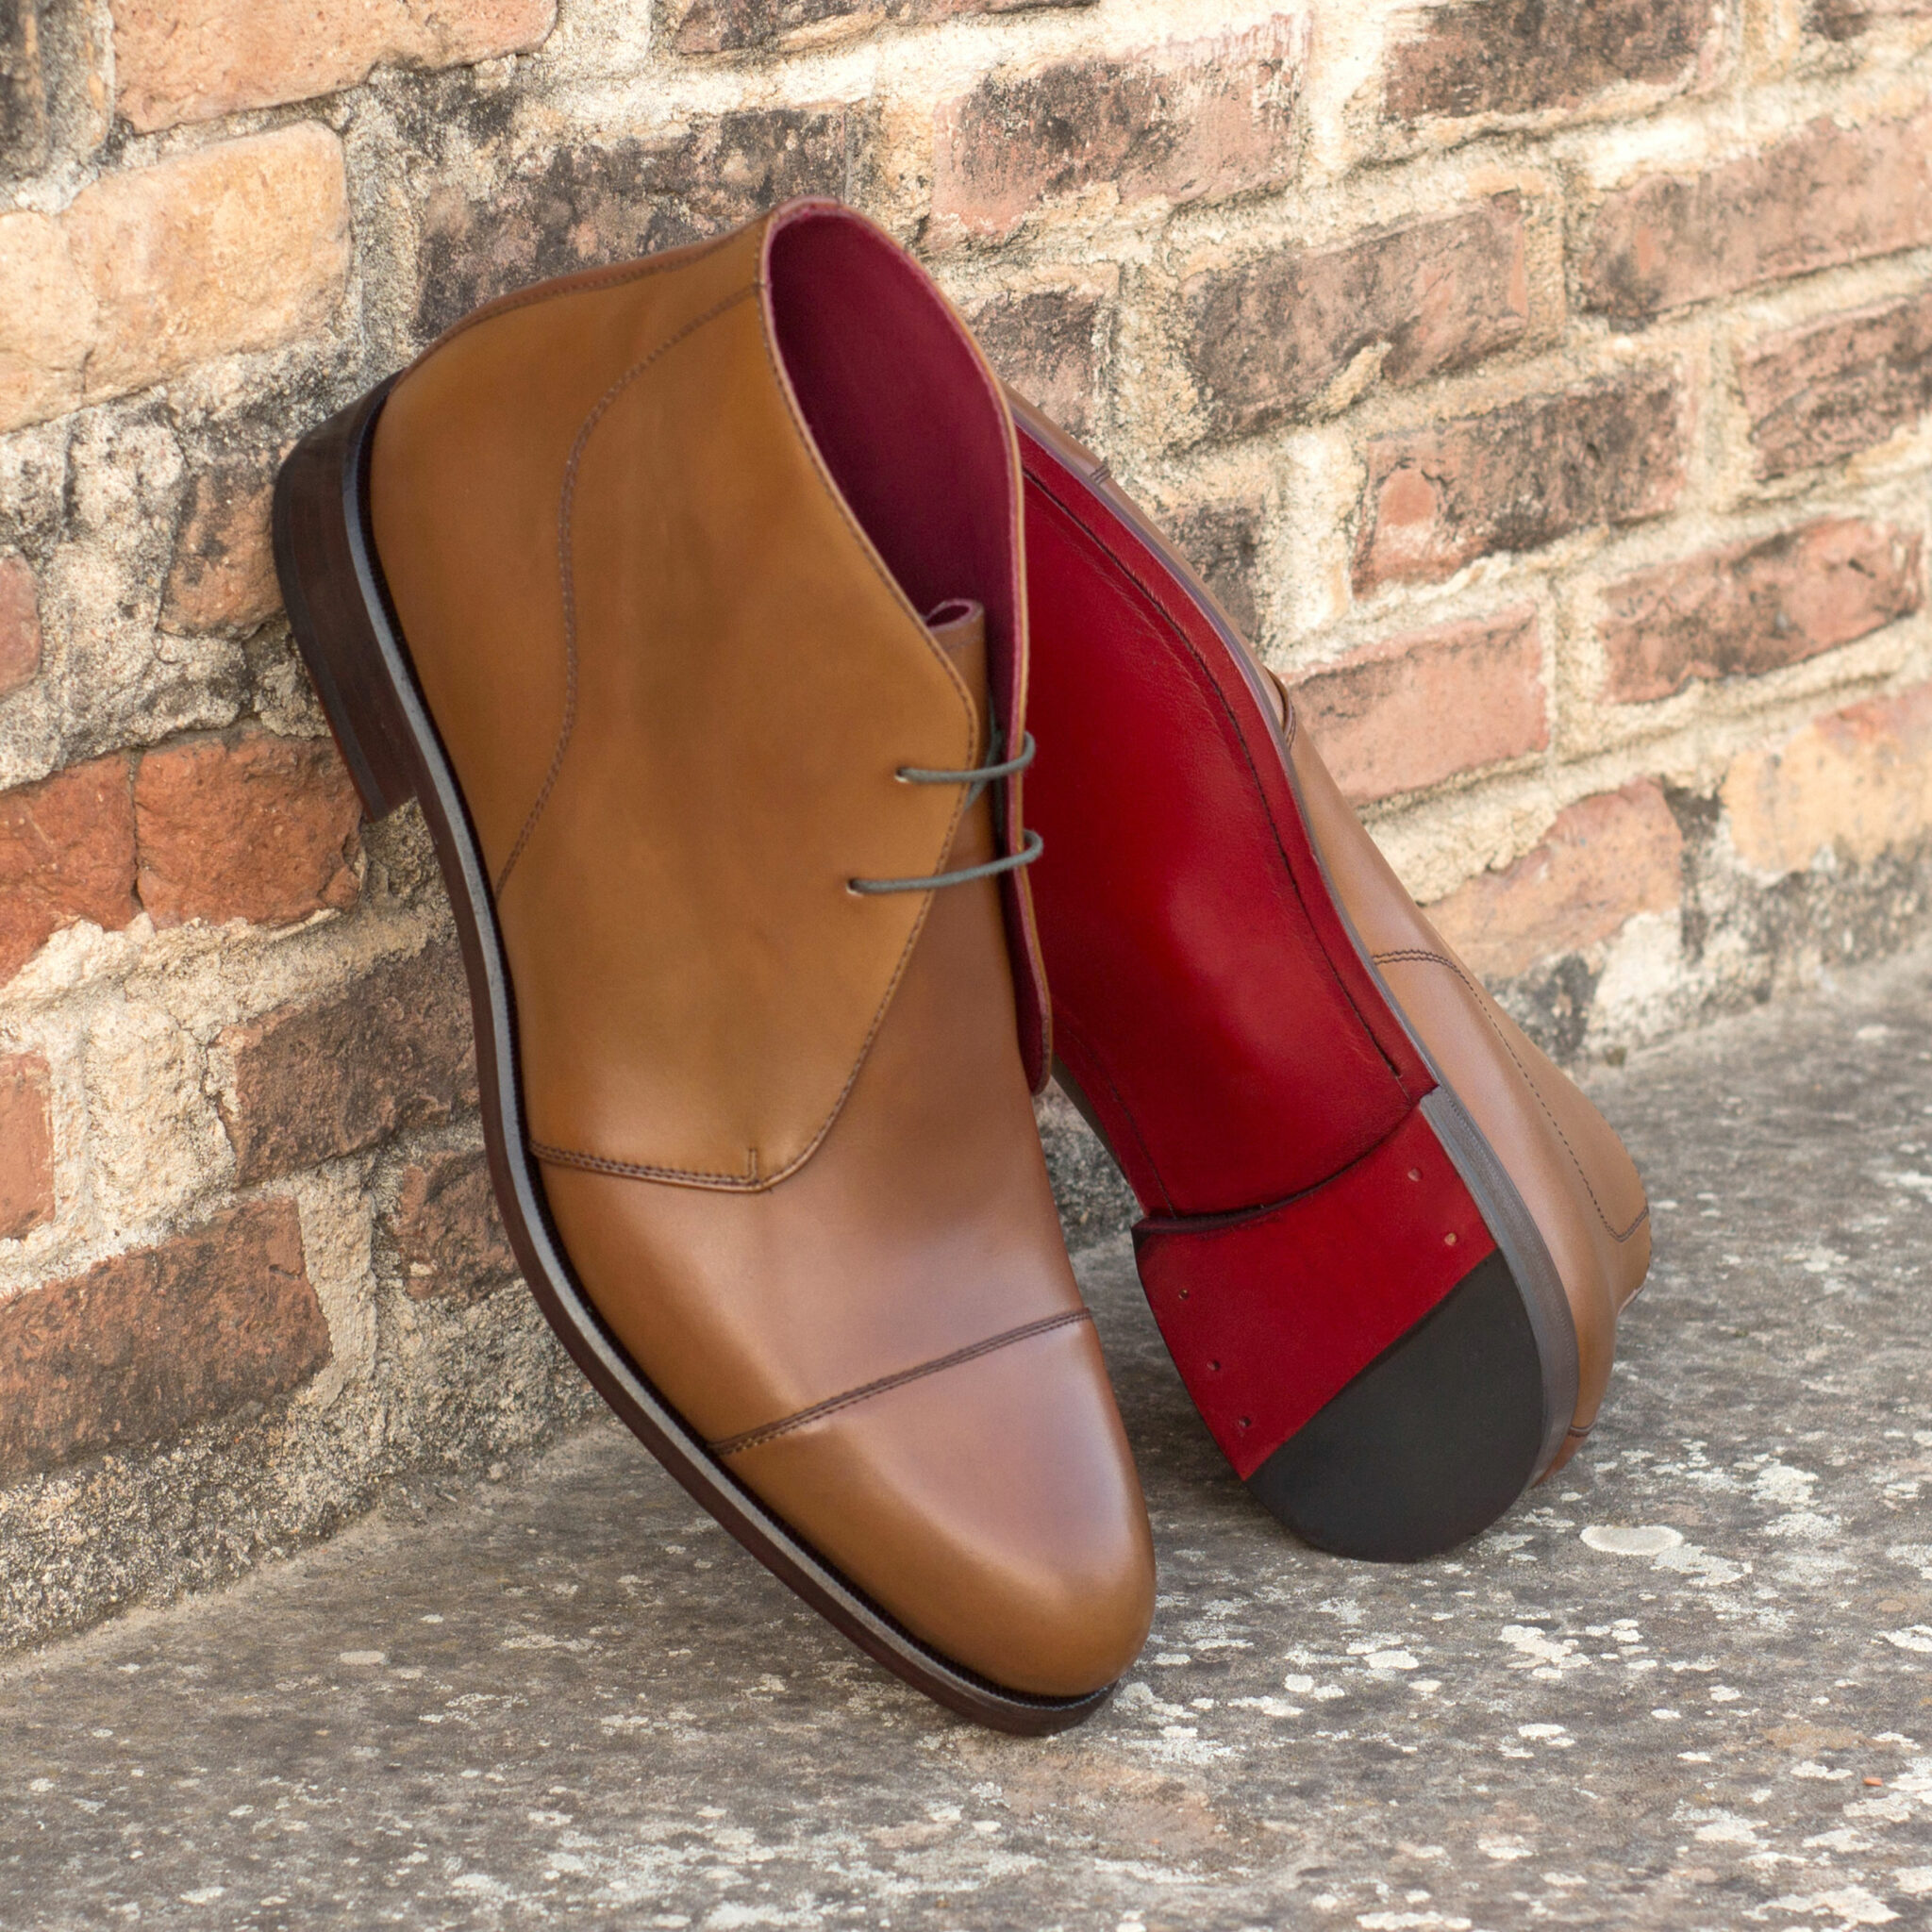 Chukka boot cognac box calf + med brown box calf : 250€